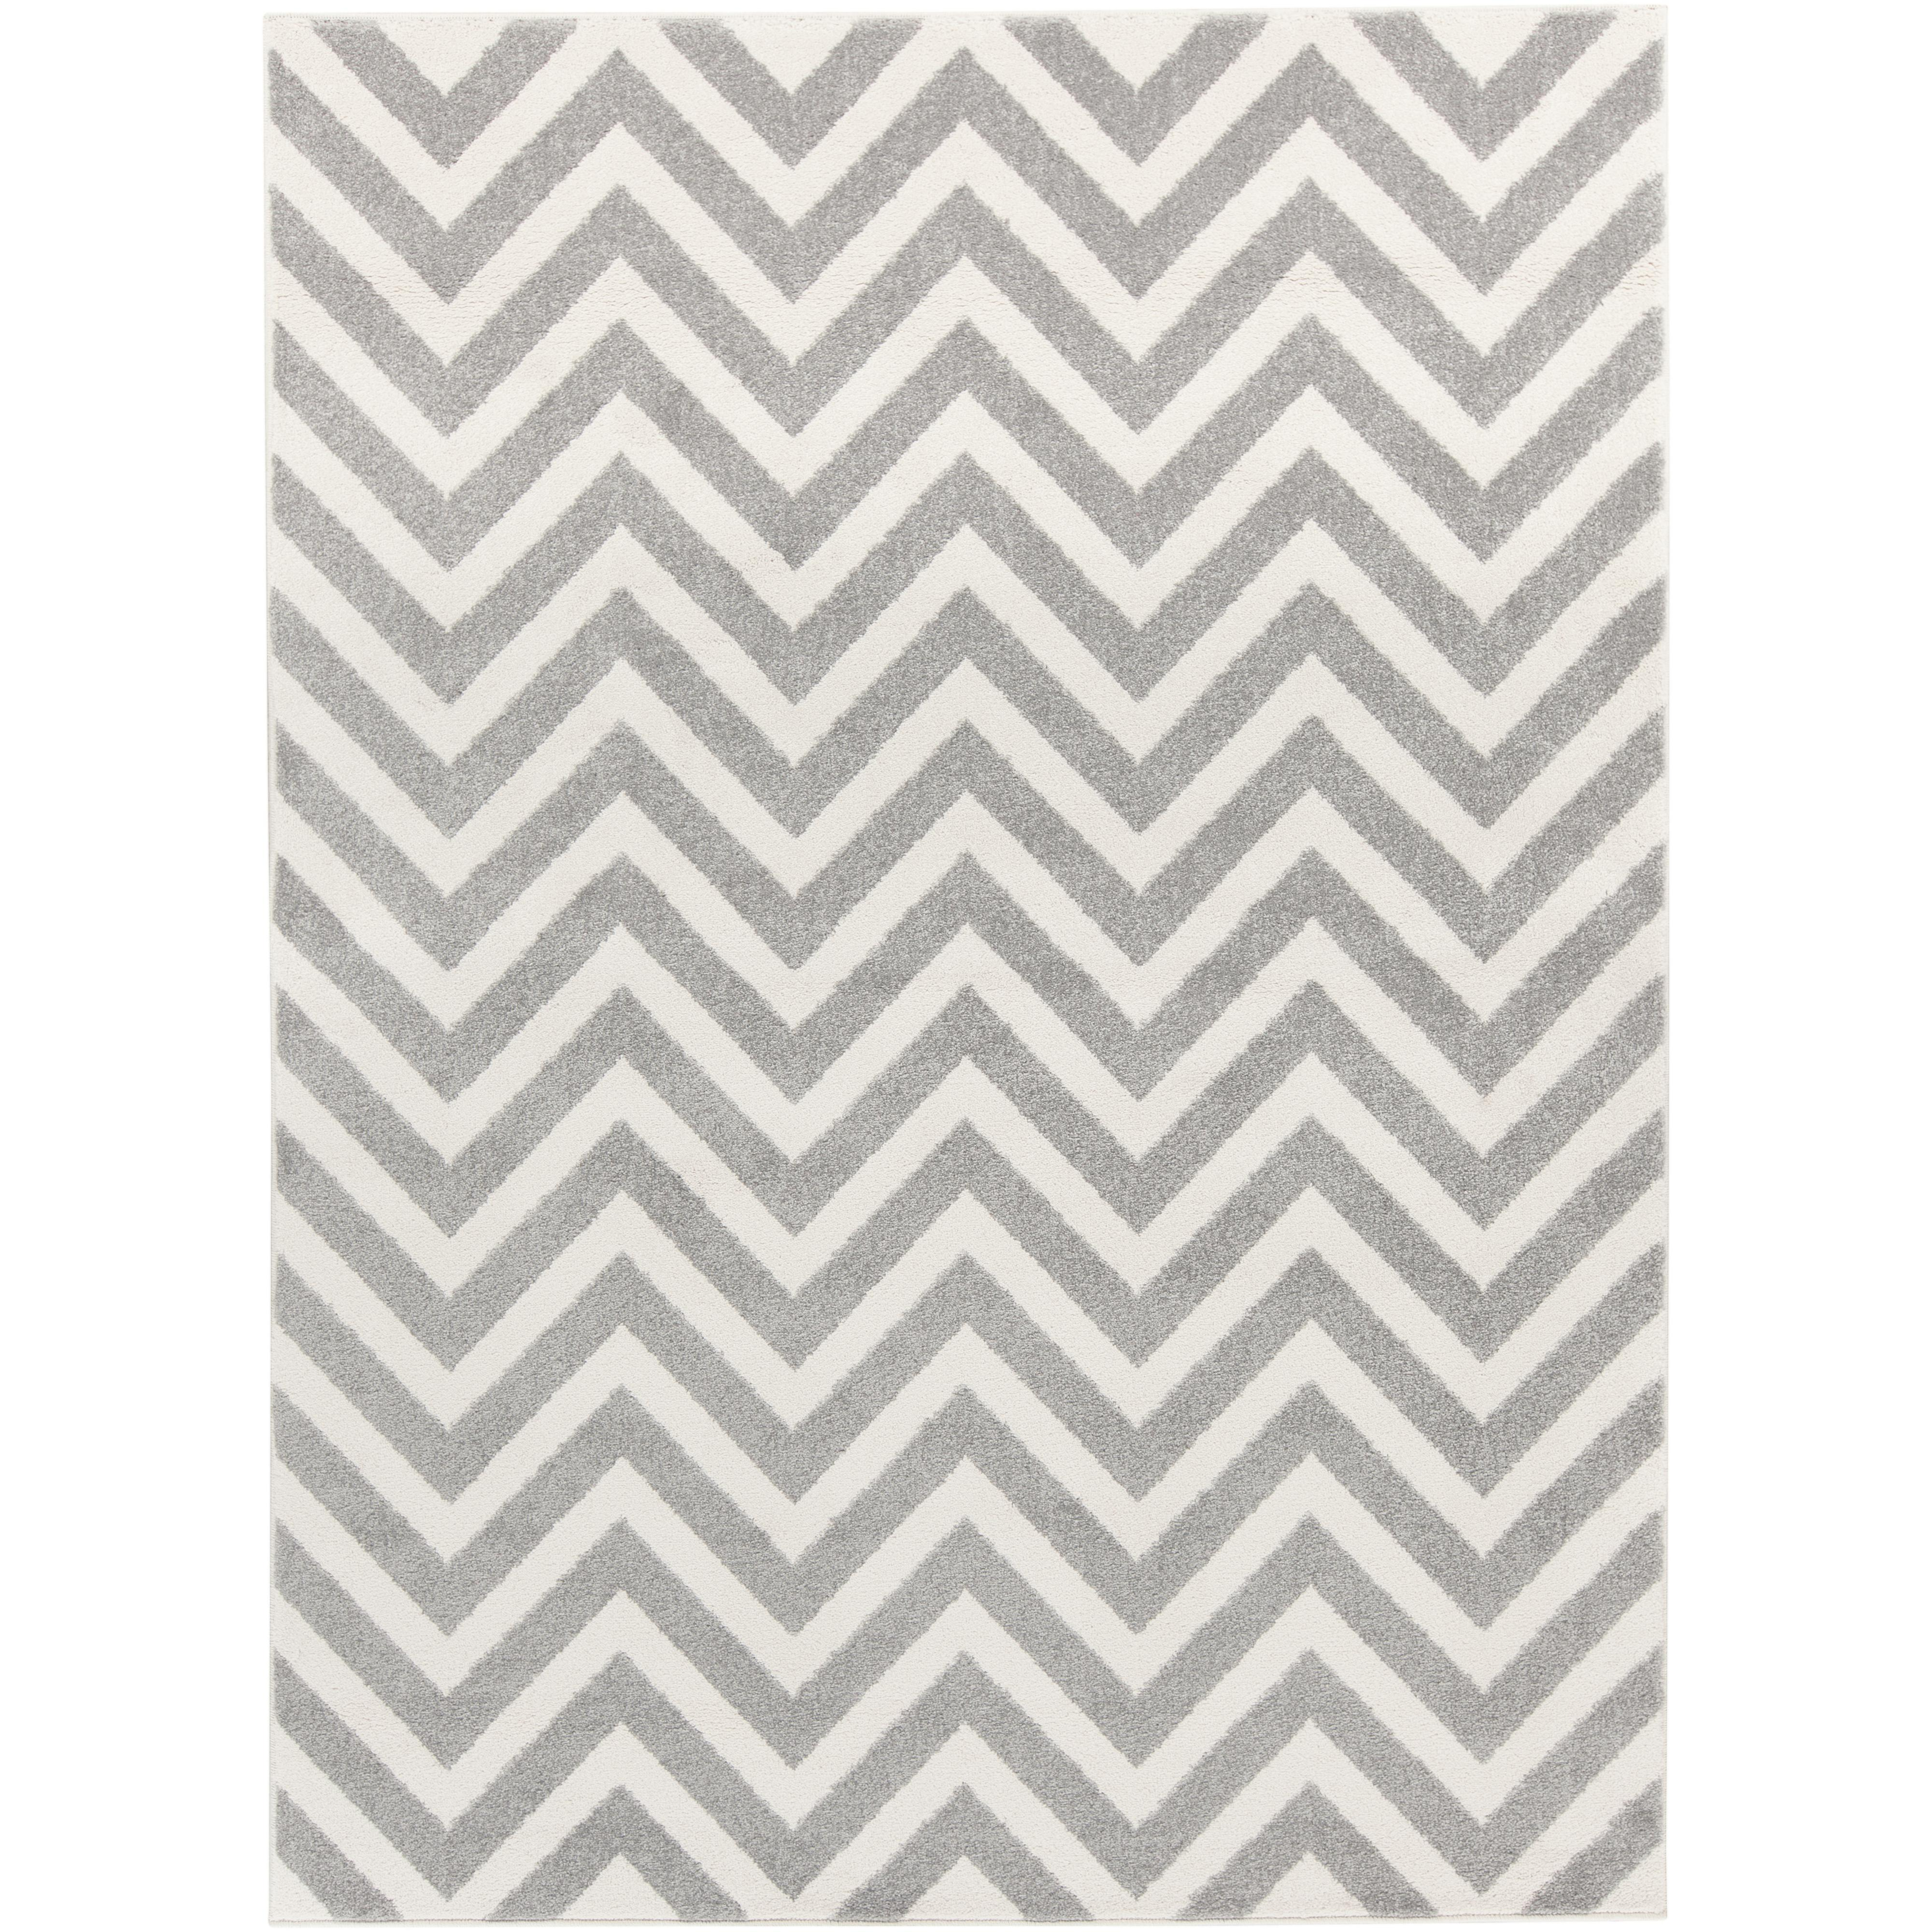 "Surya Rugs Horizon 9'3"" x 12'6"" - Item Number: HRZ1038-93126"